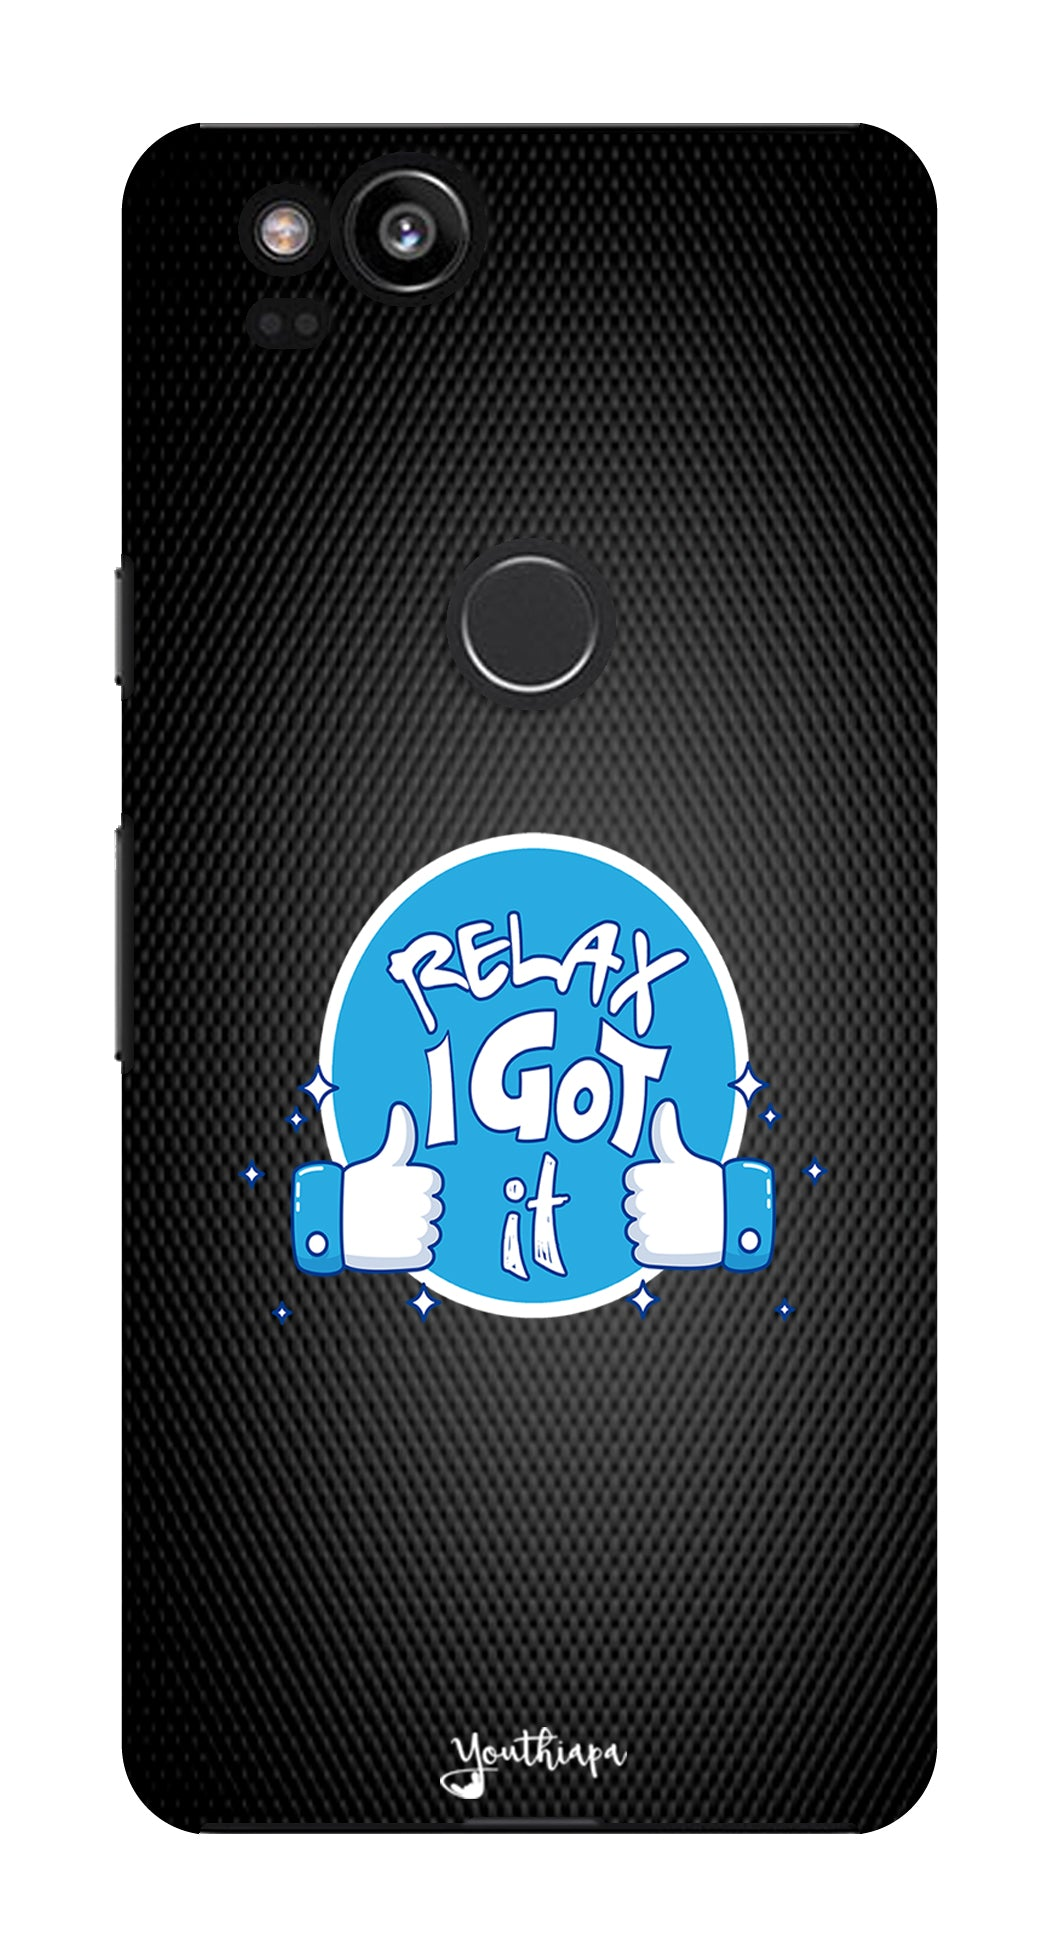 Relax Edition for Google Pixel 2